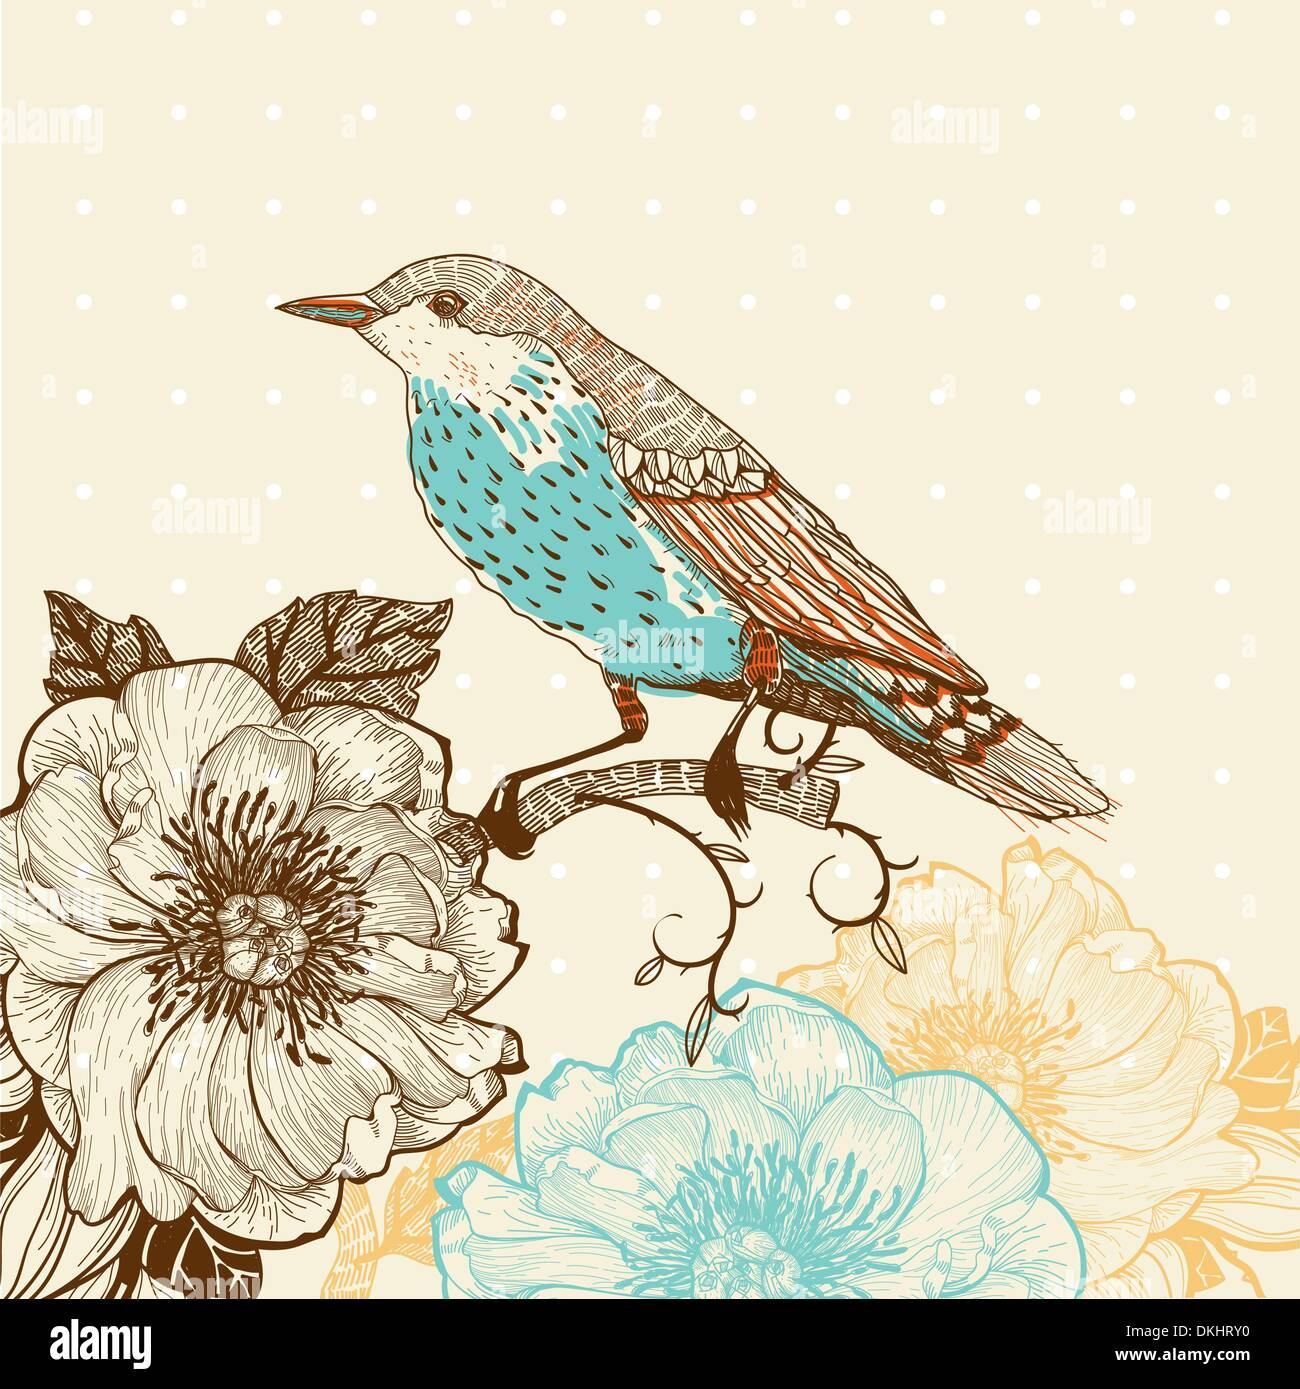 vector illustration of a bird and blooming flowers in a vintage style - Stock Image